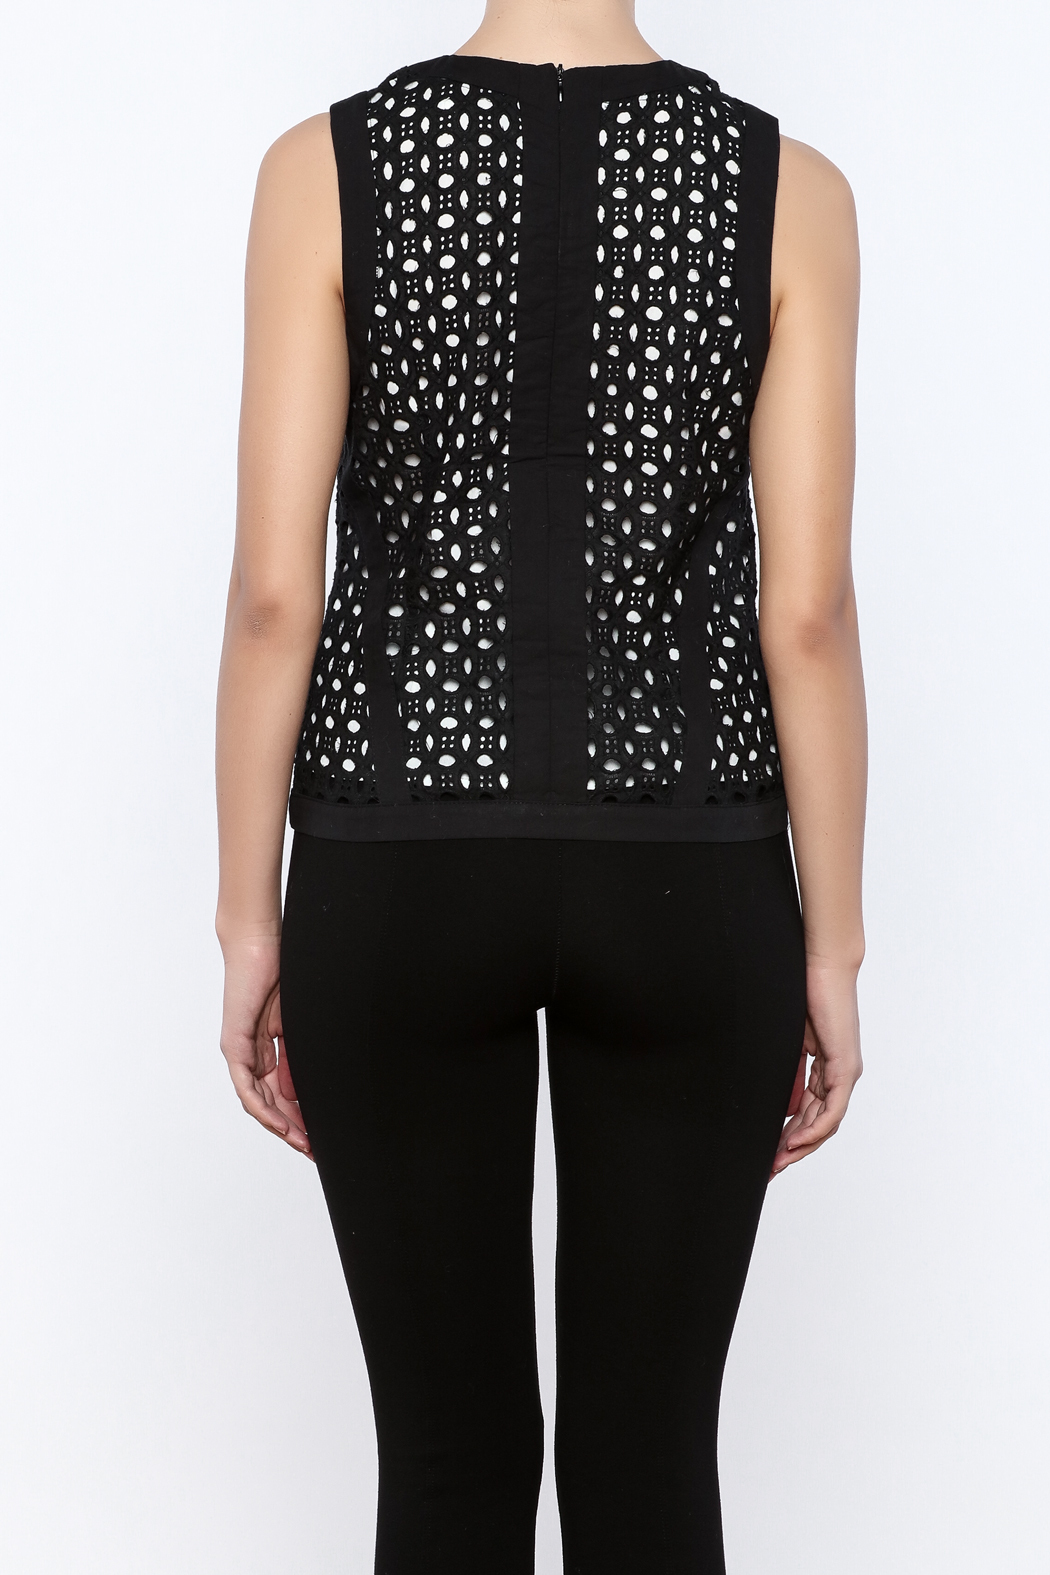 Bishop + Young Eyelet Contrast Top - Back Cropped Image